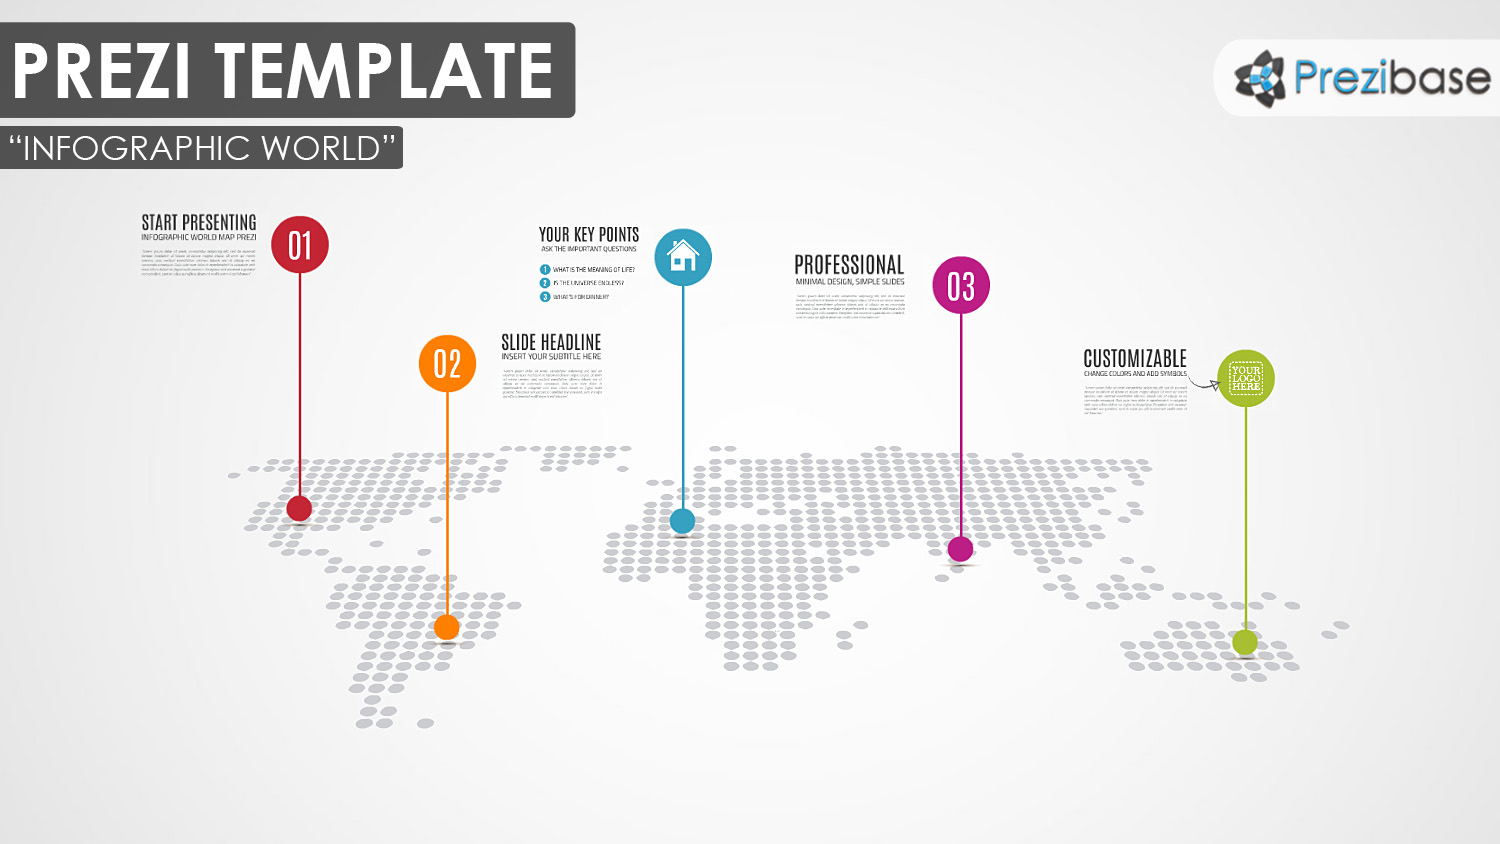 World map prezi templates prezibase customizable tablet computer layout zoom prezi template for presentations gumiabroncs Images